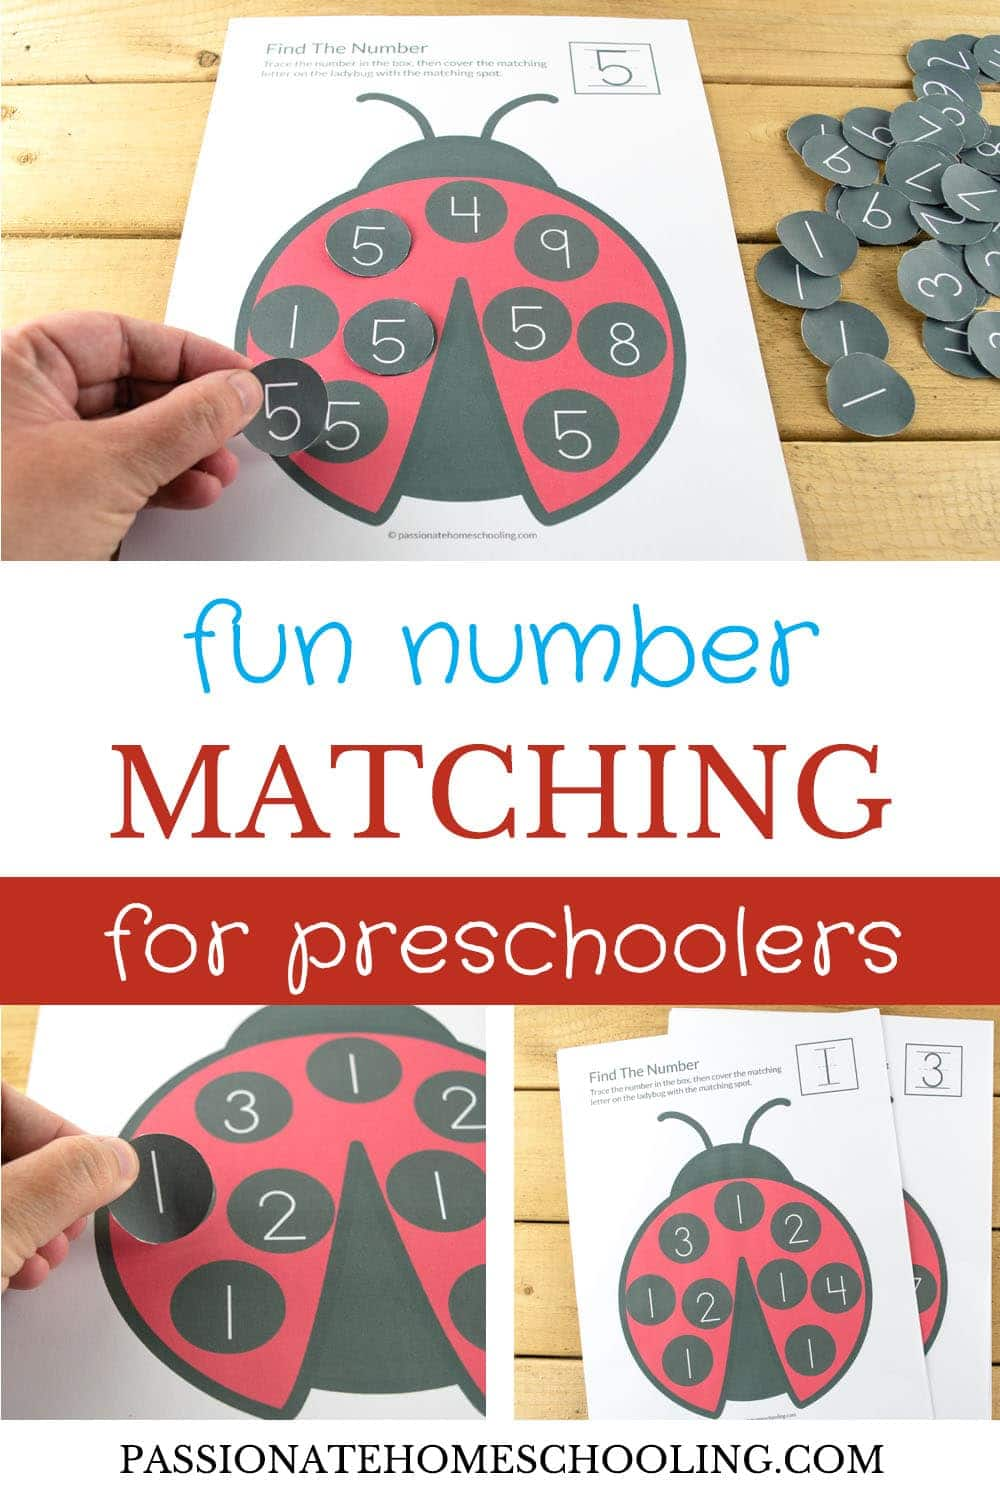 Fun Number Matching For Preschoolers